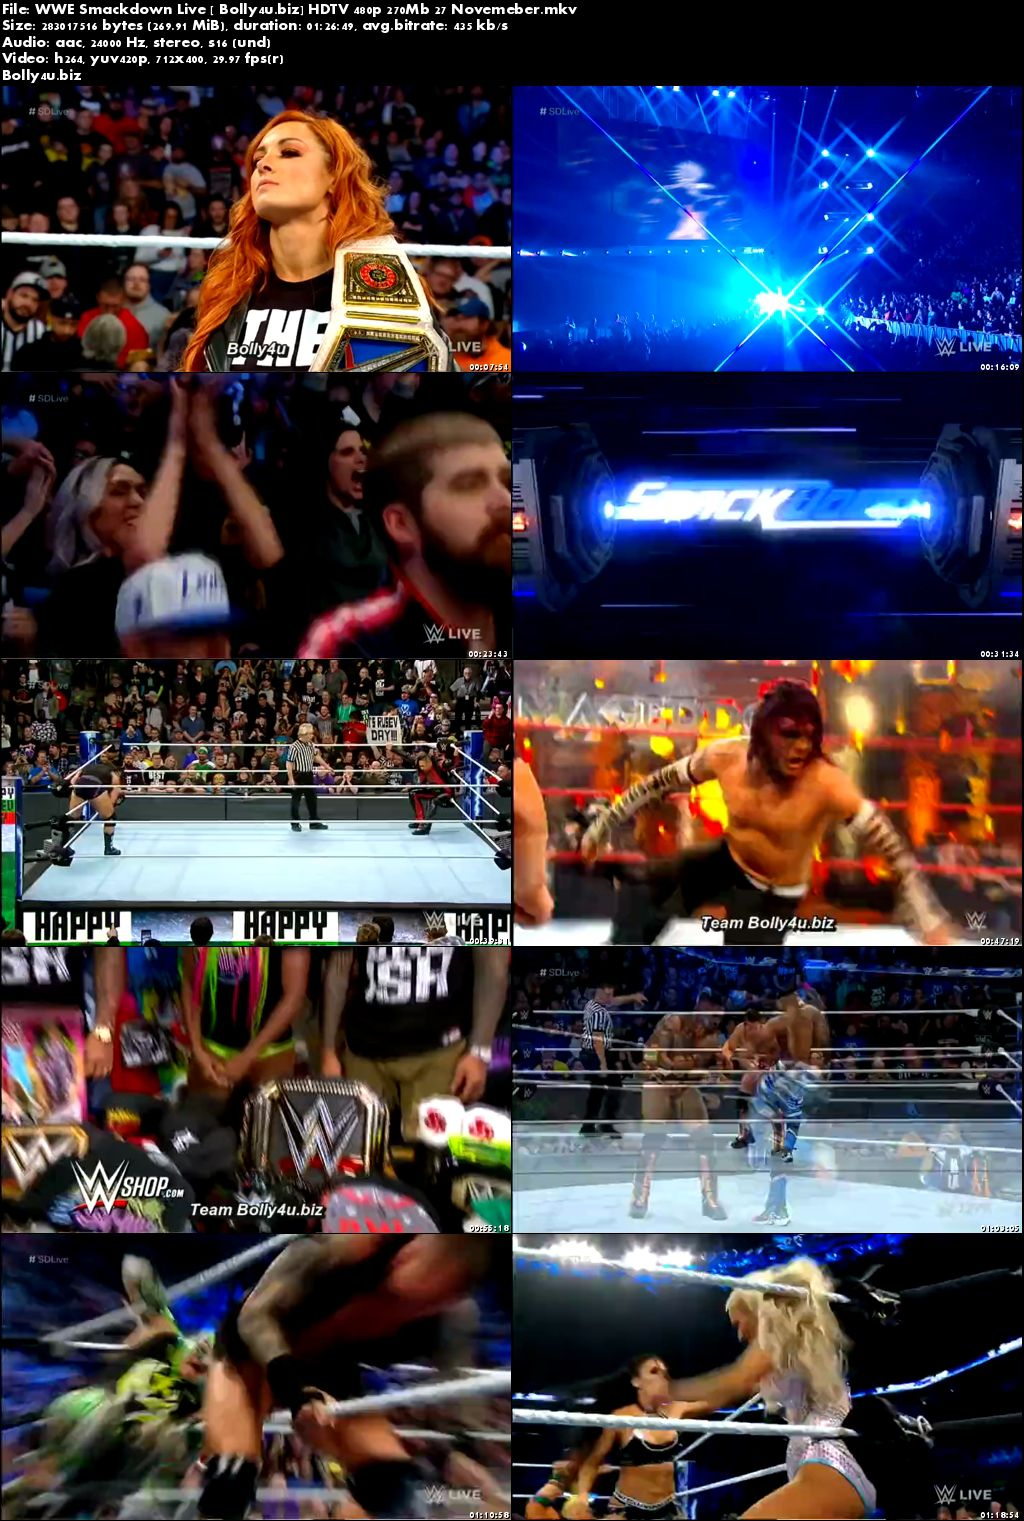 WWE Smackdown Live HDTV 480p 270Mb 27 November Download